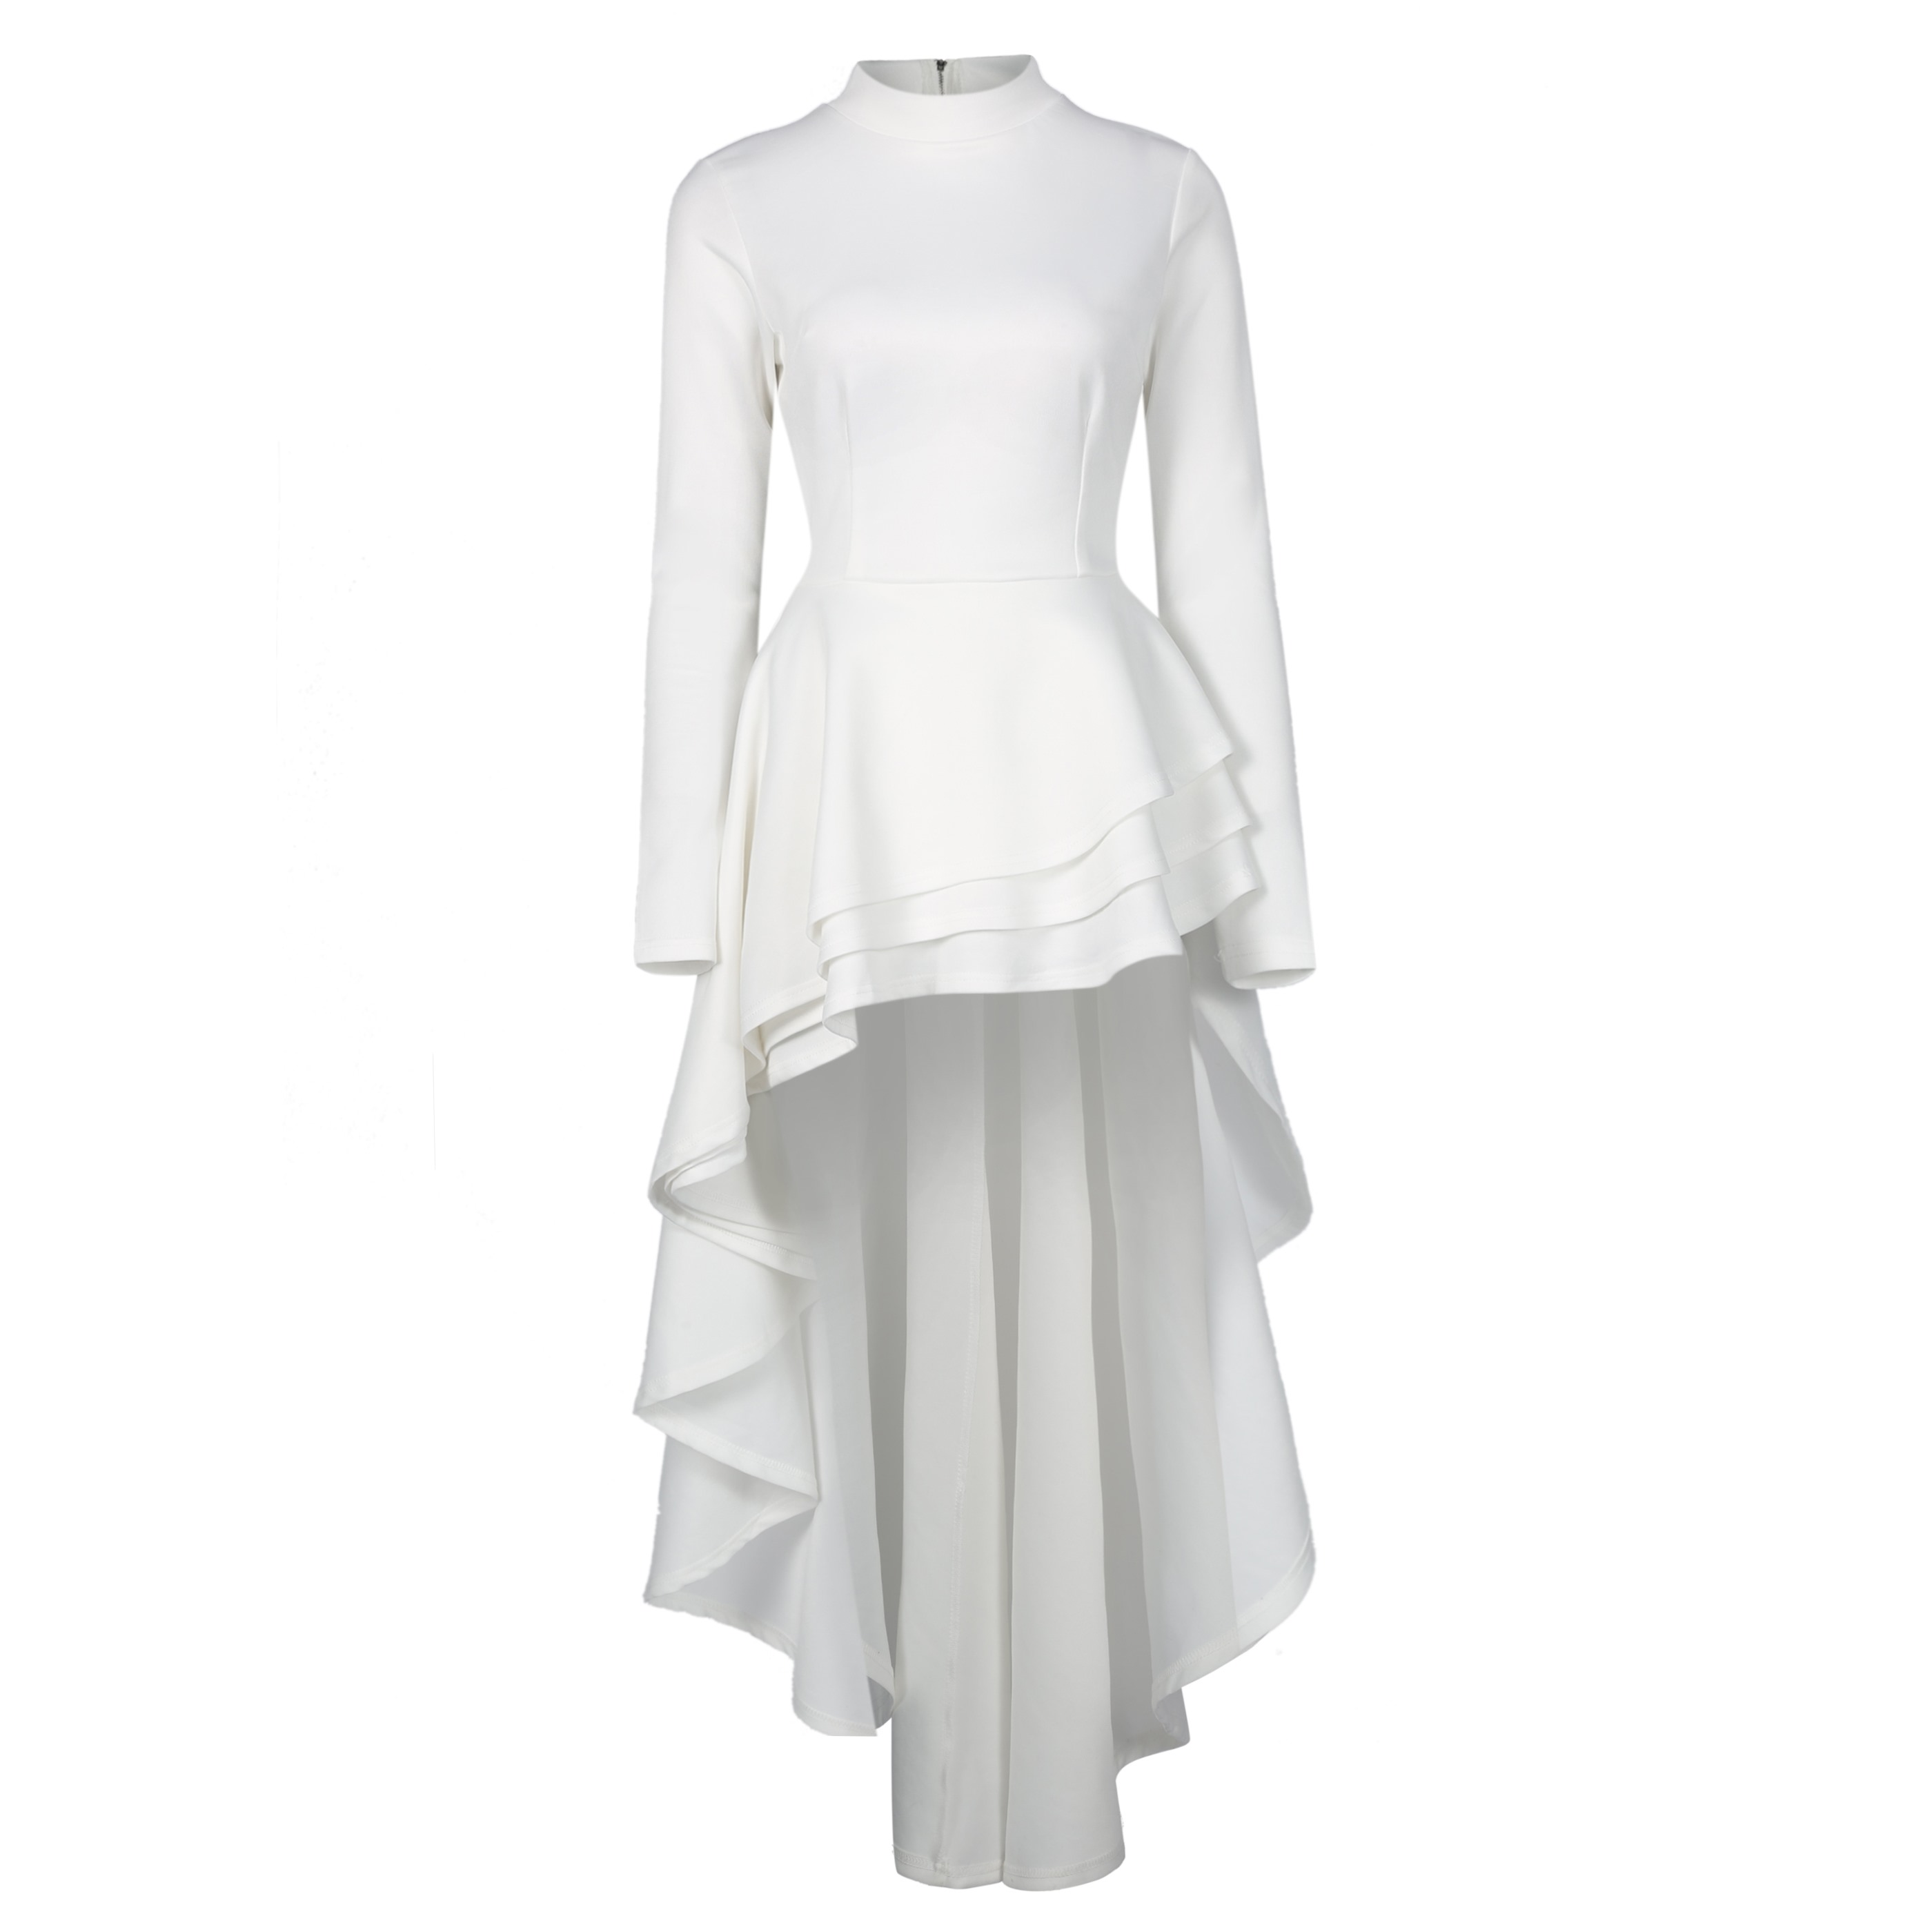 US $27.88 47% OFF|Women Ruffles Asymmetrical Dress Plus Size Long Sleeve  Dress Office Big Size White Black Burgundy Trailing Elegant Party Dress-in  ...